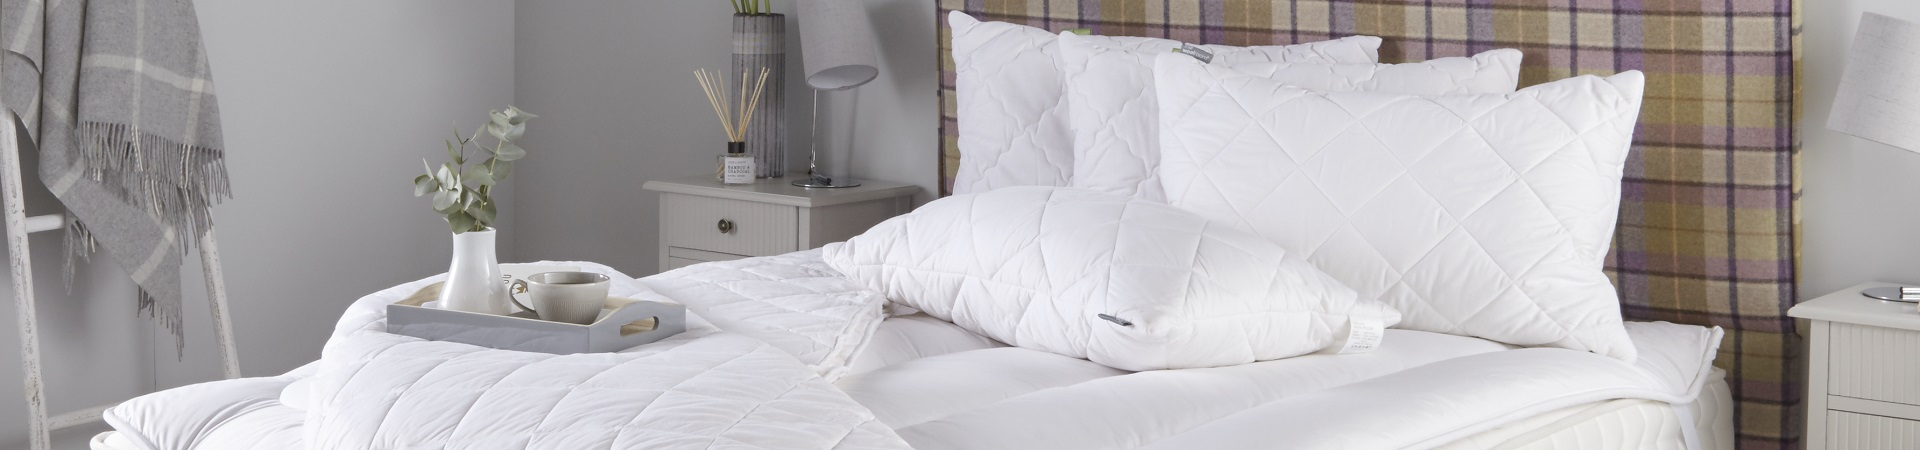 http://www.thewoolroom.com/images/categories/bedding-set-category-image.jpg